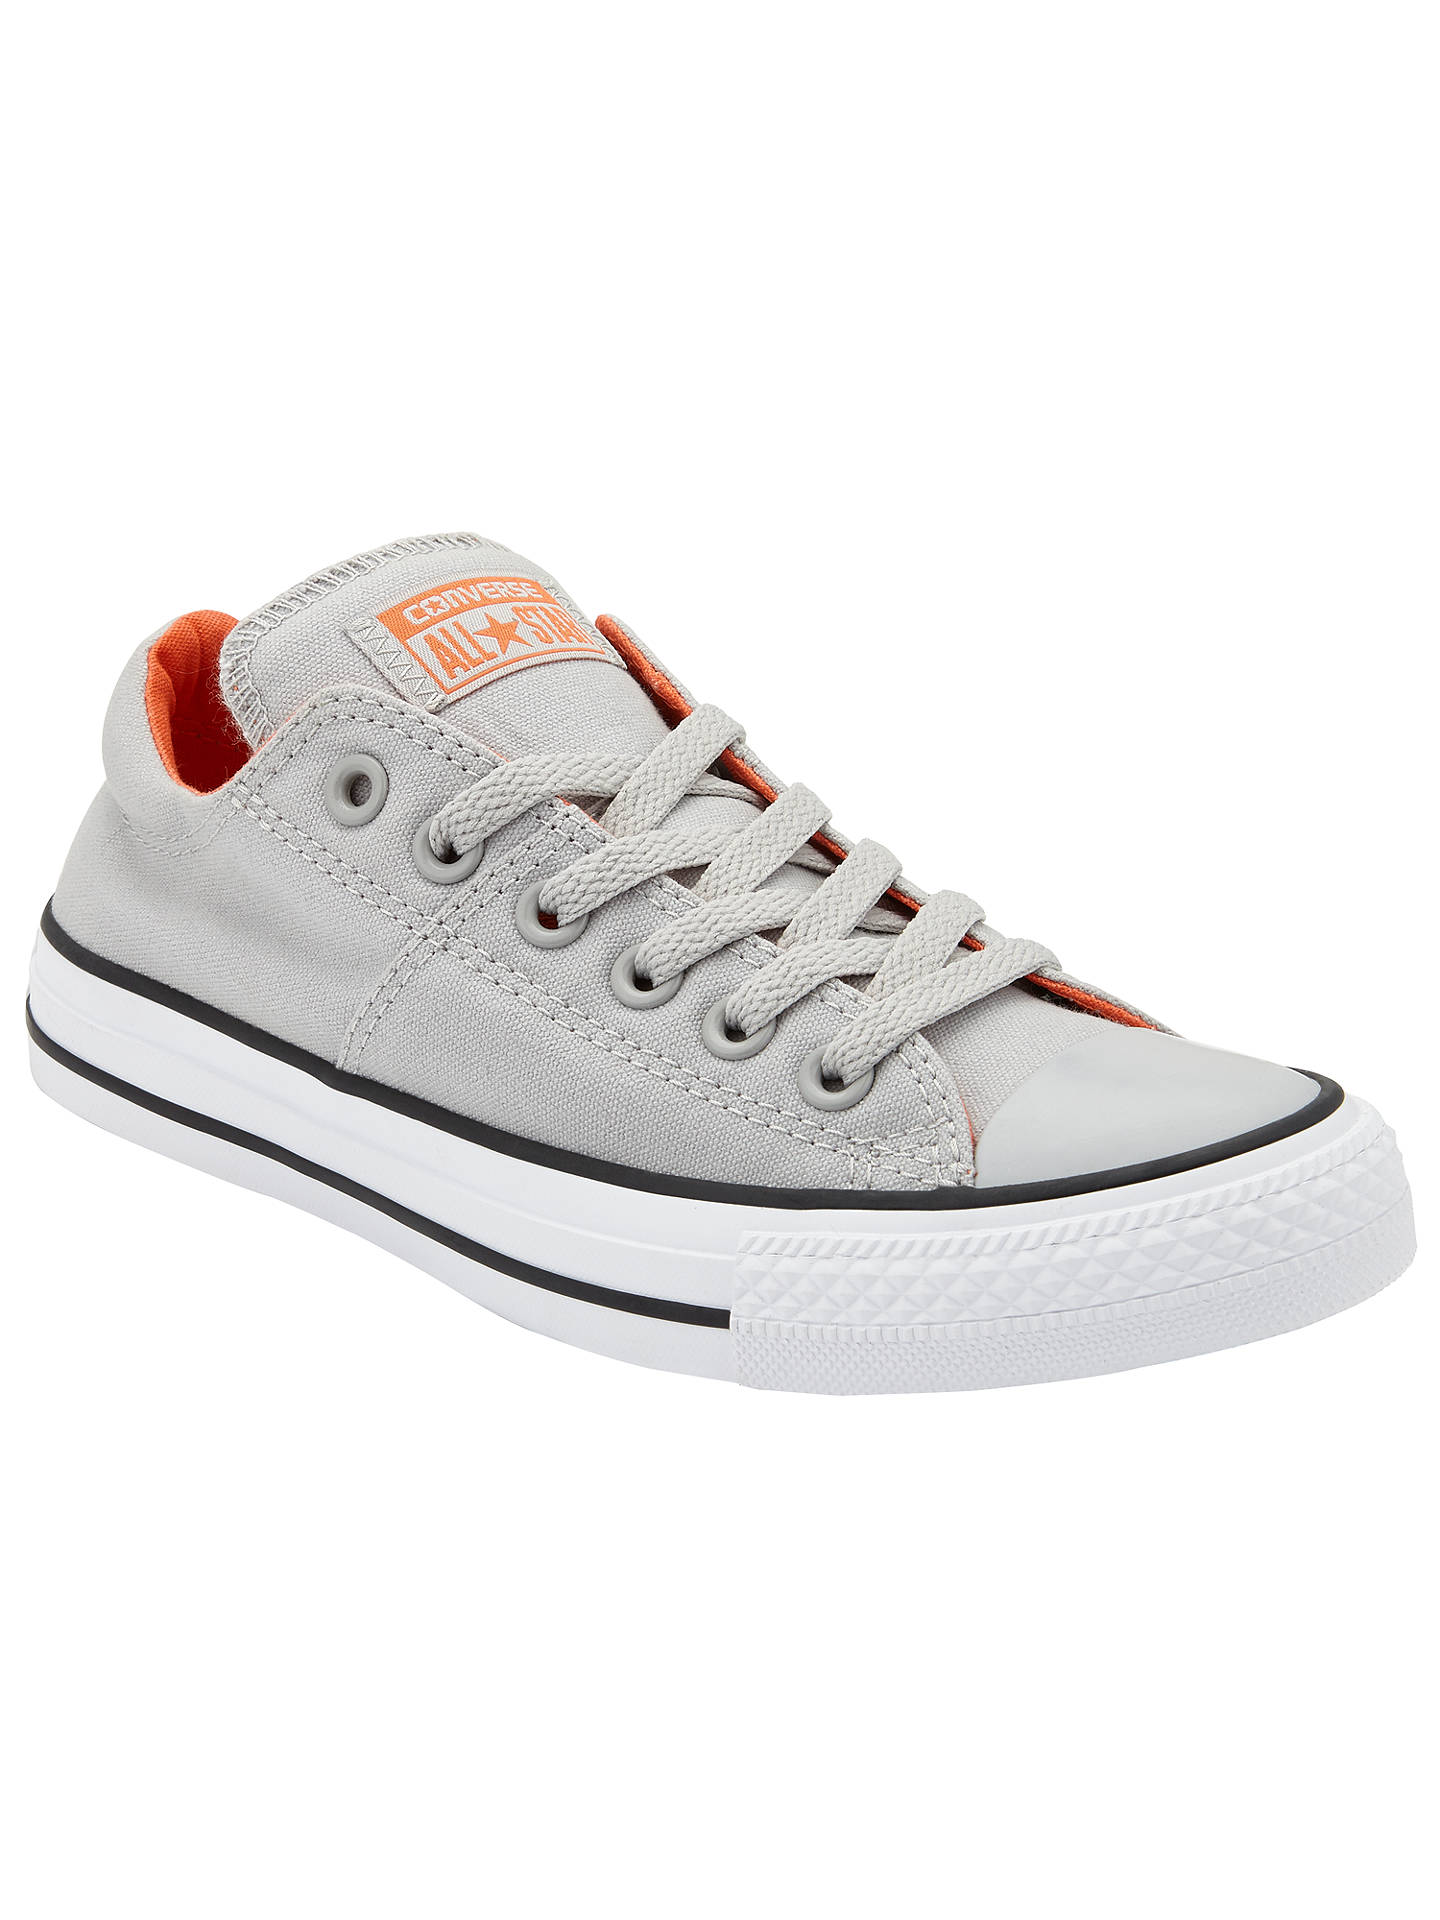 17195011e503 Buy Converse Chuck Taylor All Star Madison Ox Trainers